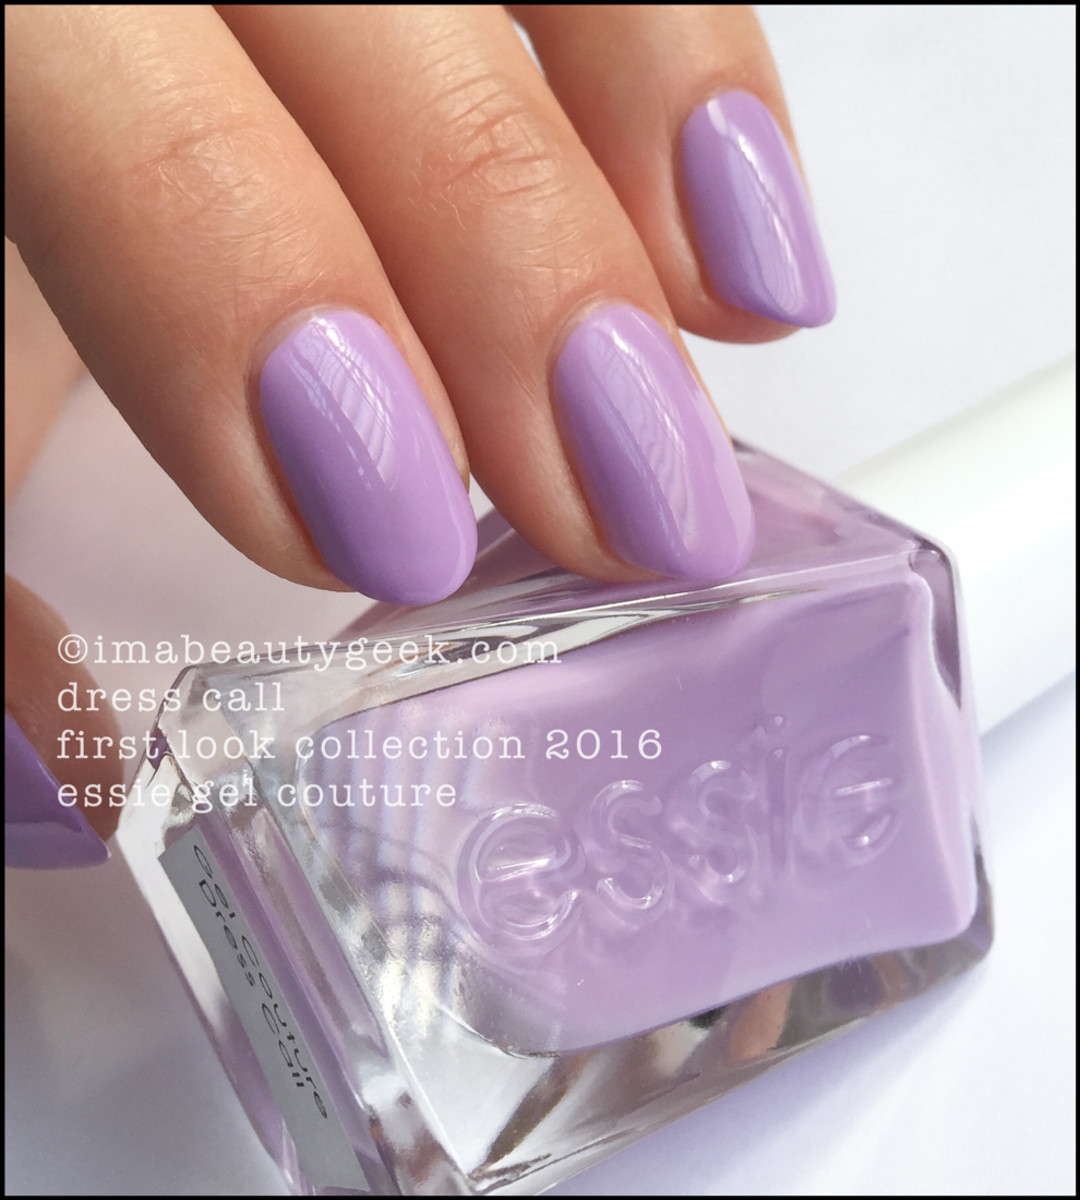 Essie Gel Couture Swatches Review_Essie Dress Call